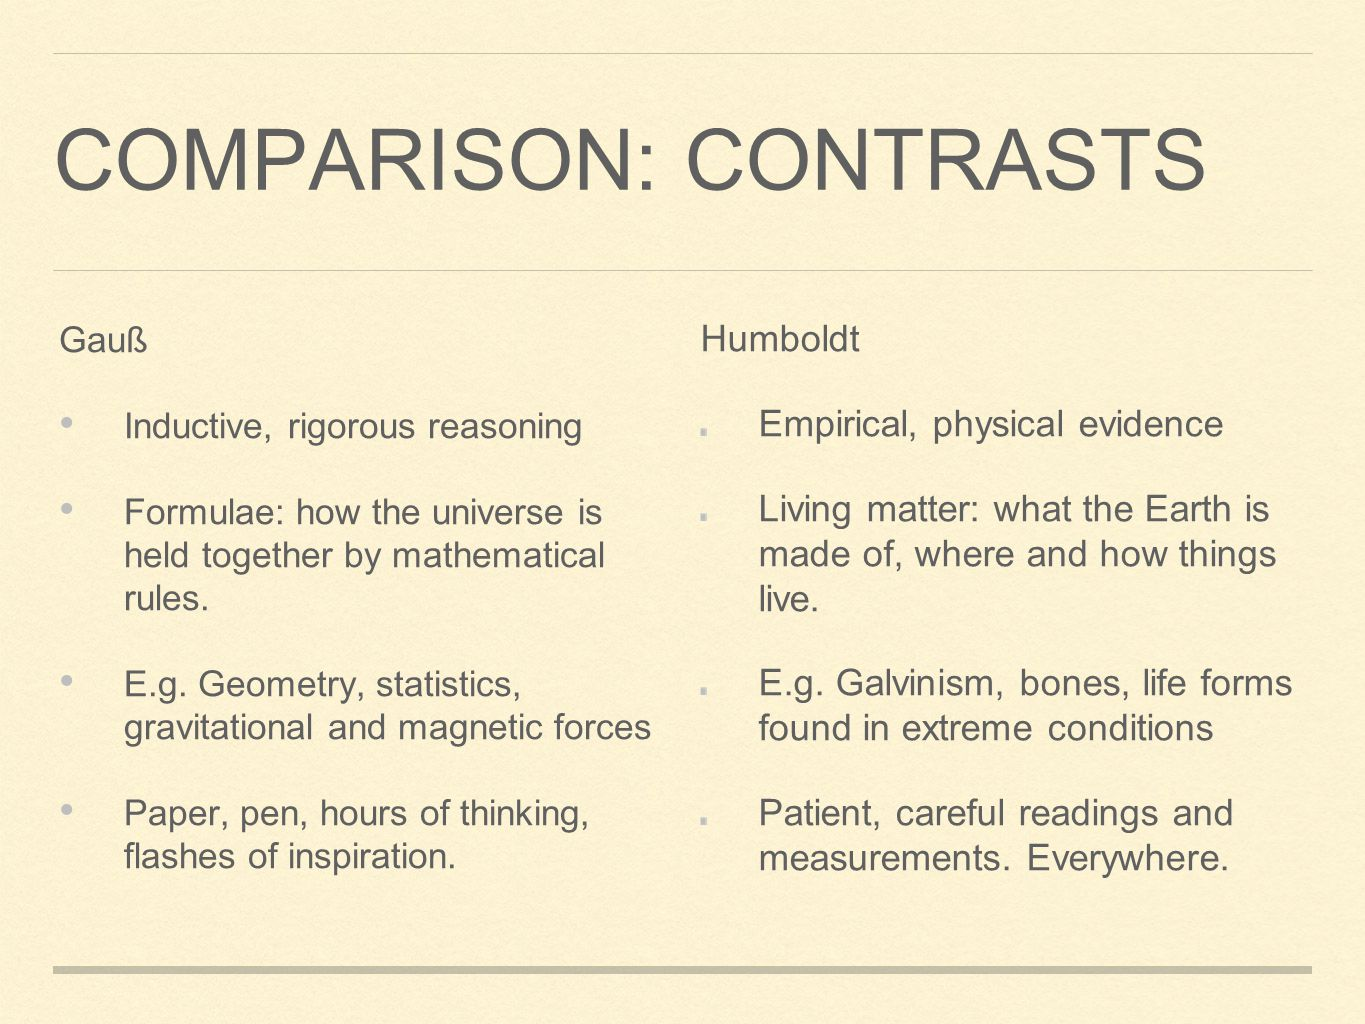 COMPARISON: CONTRASTS Humboldt Empirical, physical evidence Living matter: what the Earth is made of, where and how things live.